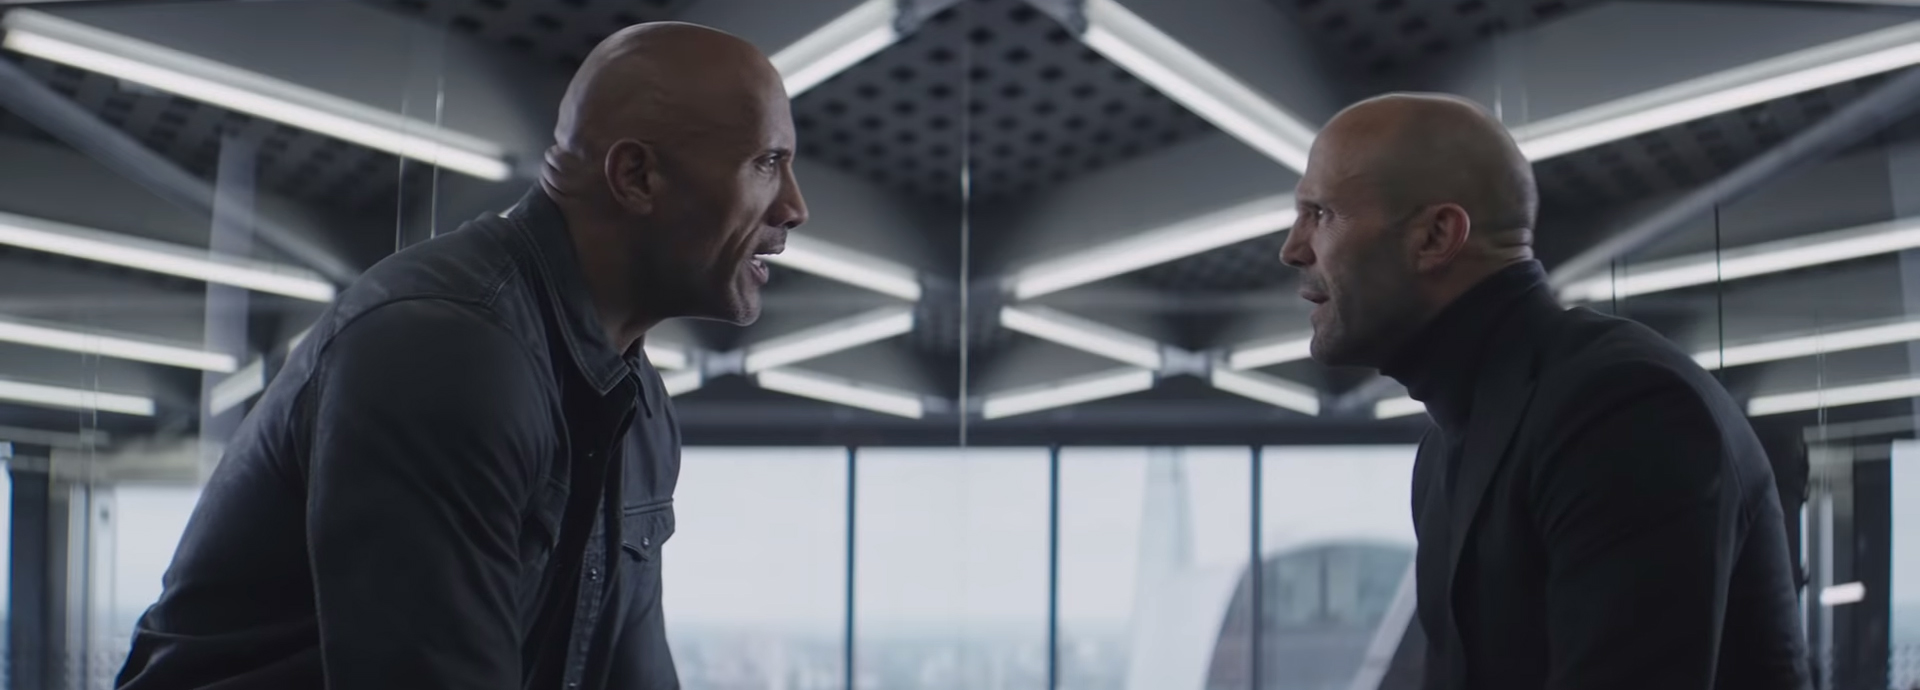 Hobbs & Shaw. Image Credit: Universal Pictures.